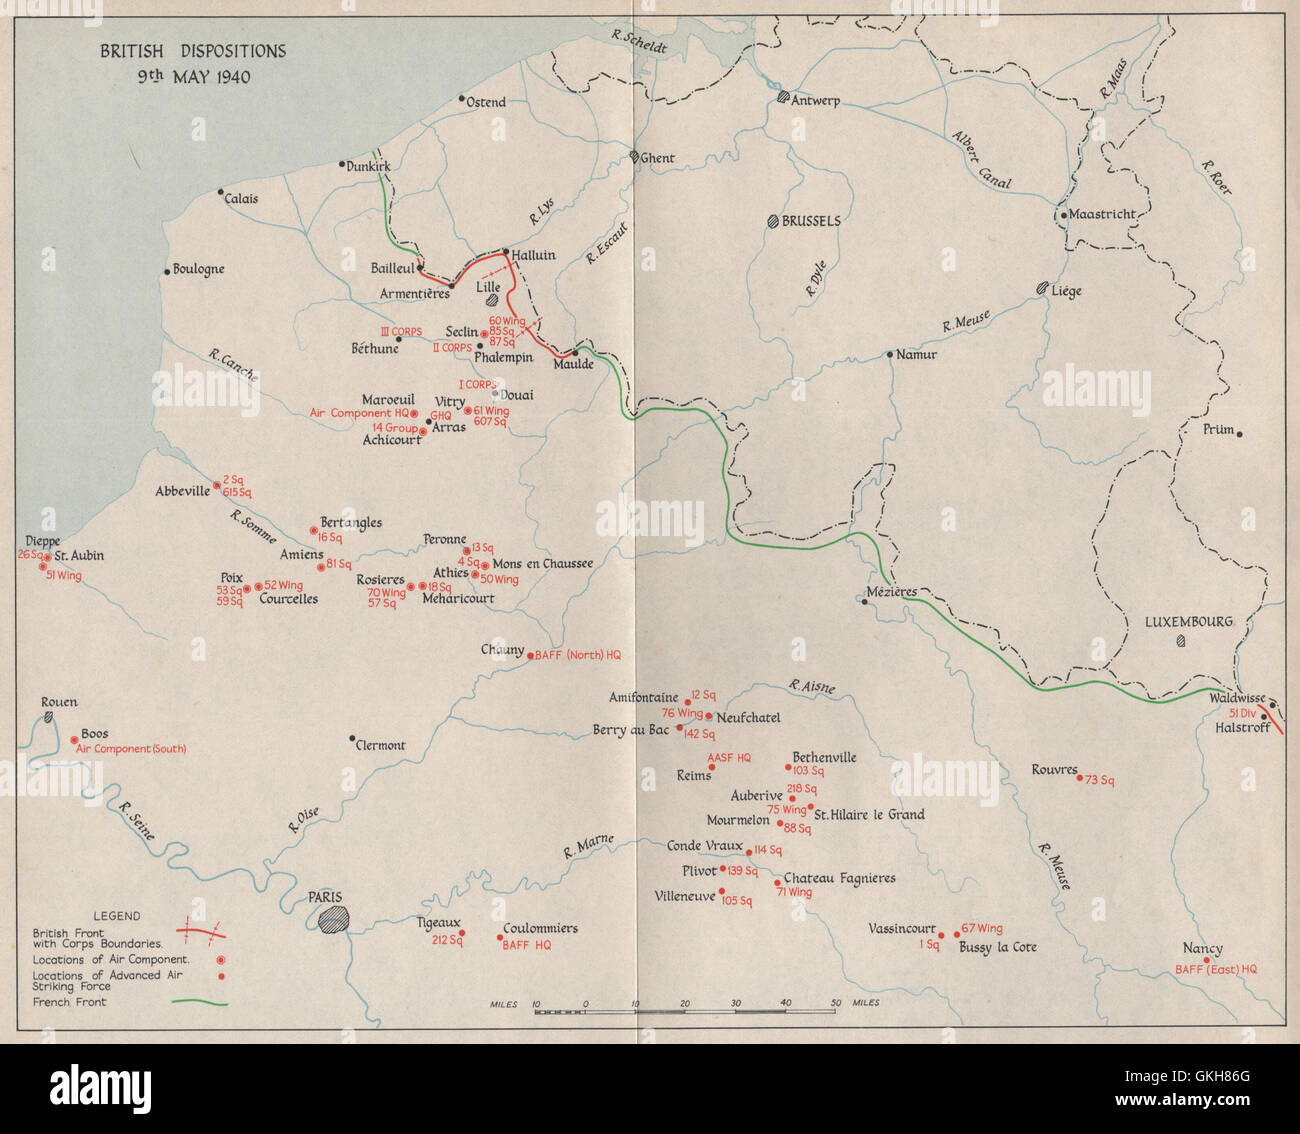 Map Of France 1940.Fall Of France British Troop Dispositions 9th May 1940 French